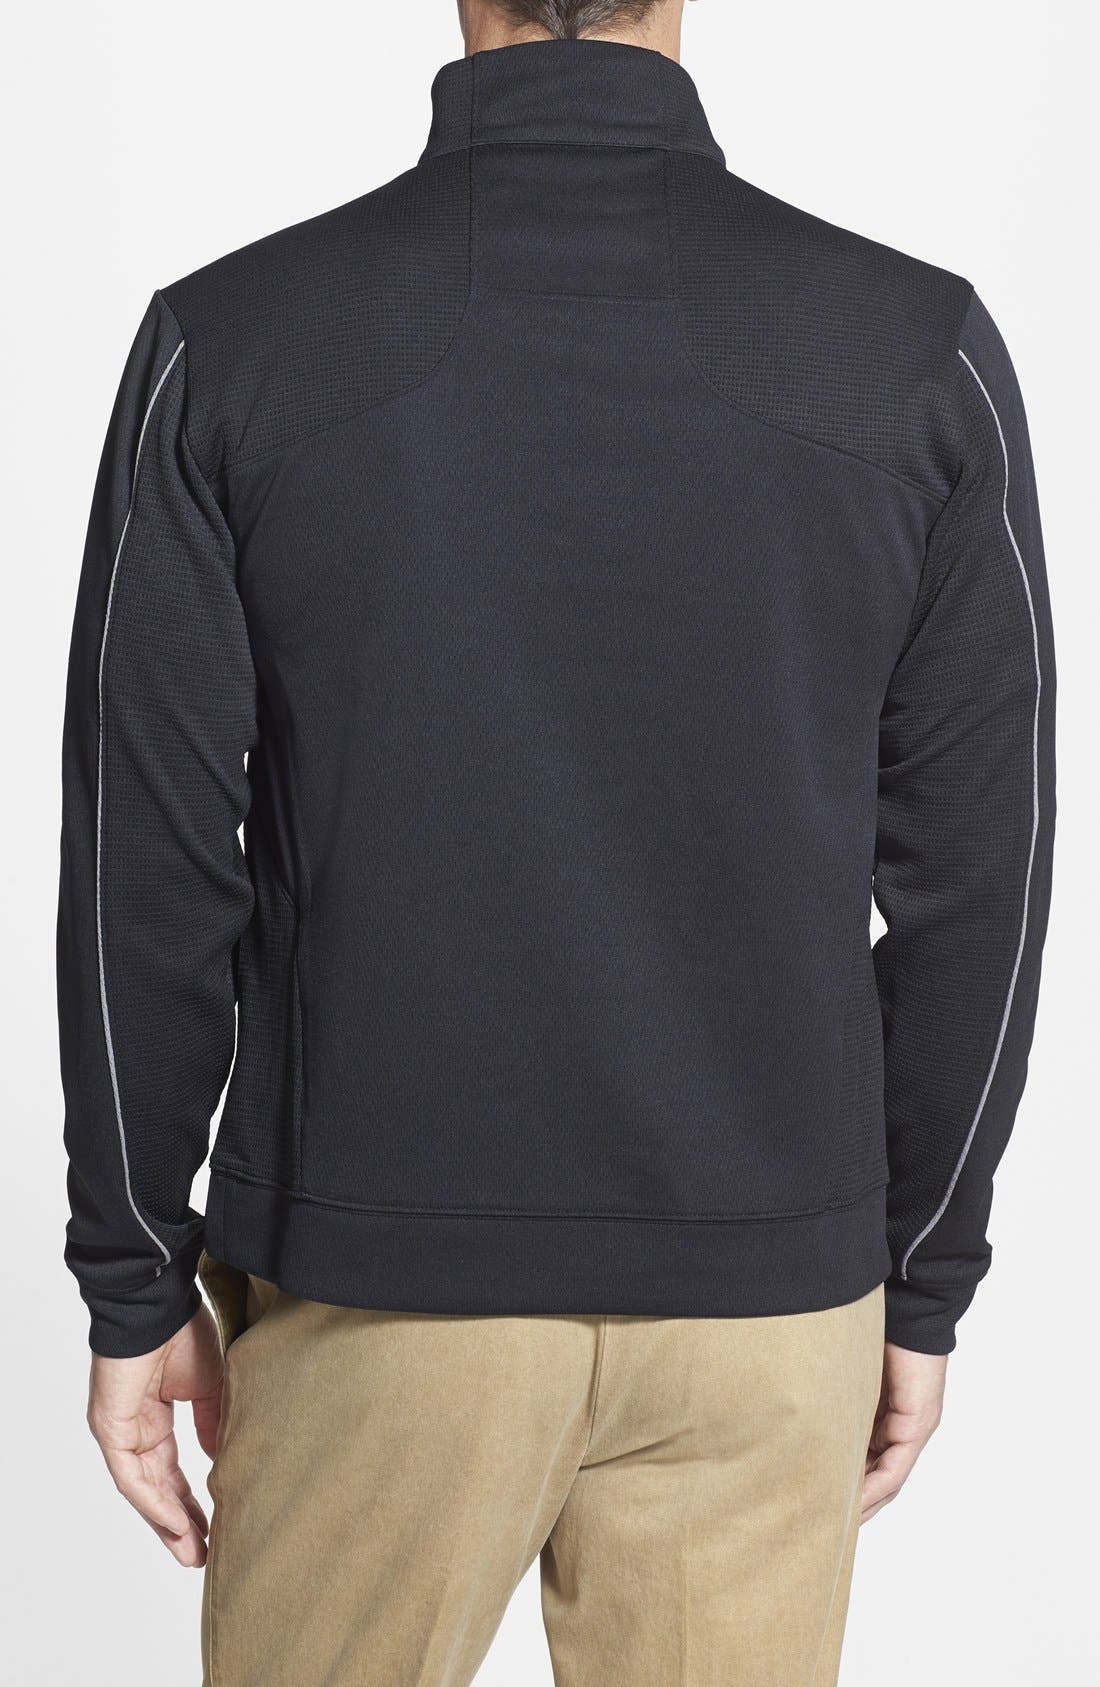 Atlanta Falcons - Edge DryTec Moisture Wicking Half Zip Pullover,                             Alternate thumbnail 2, color,                             001